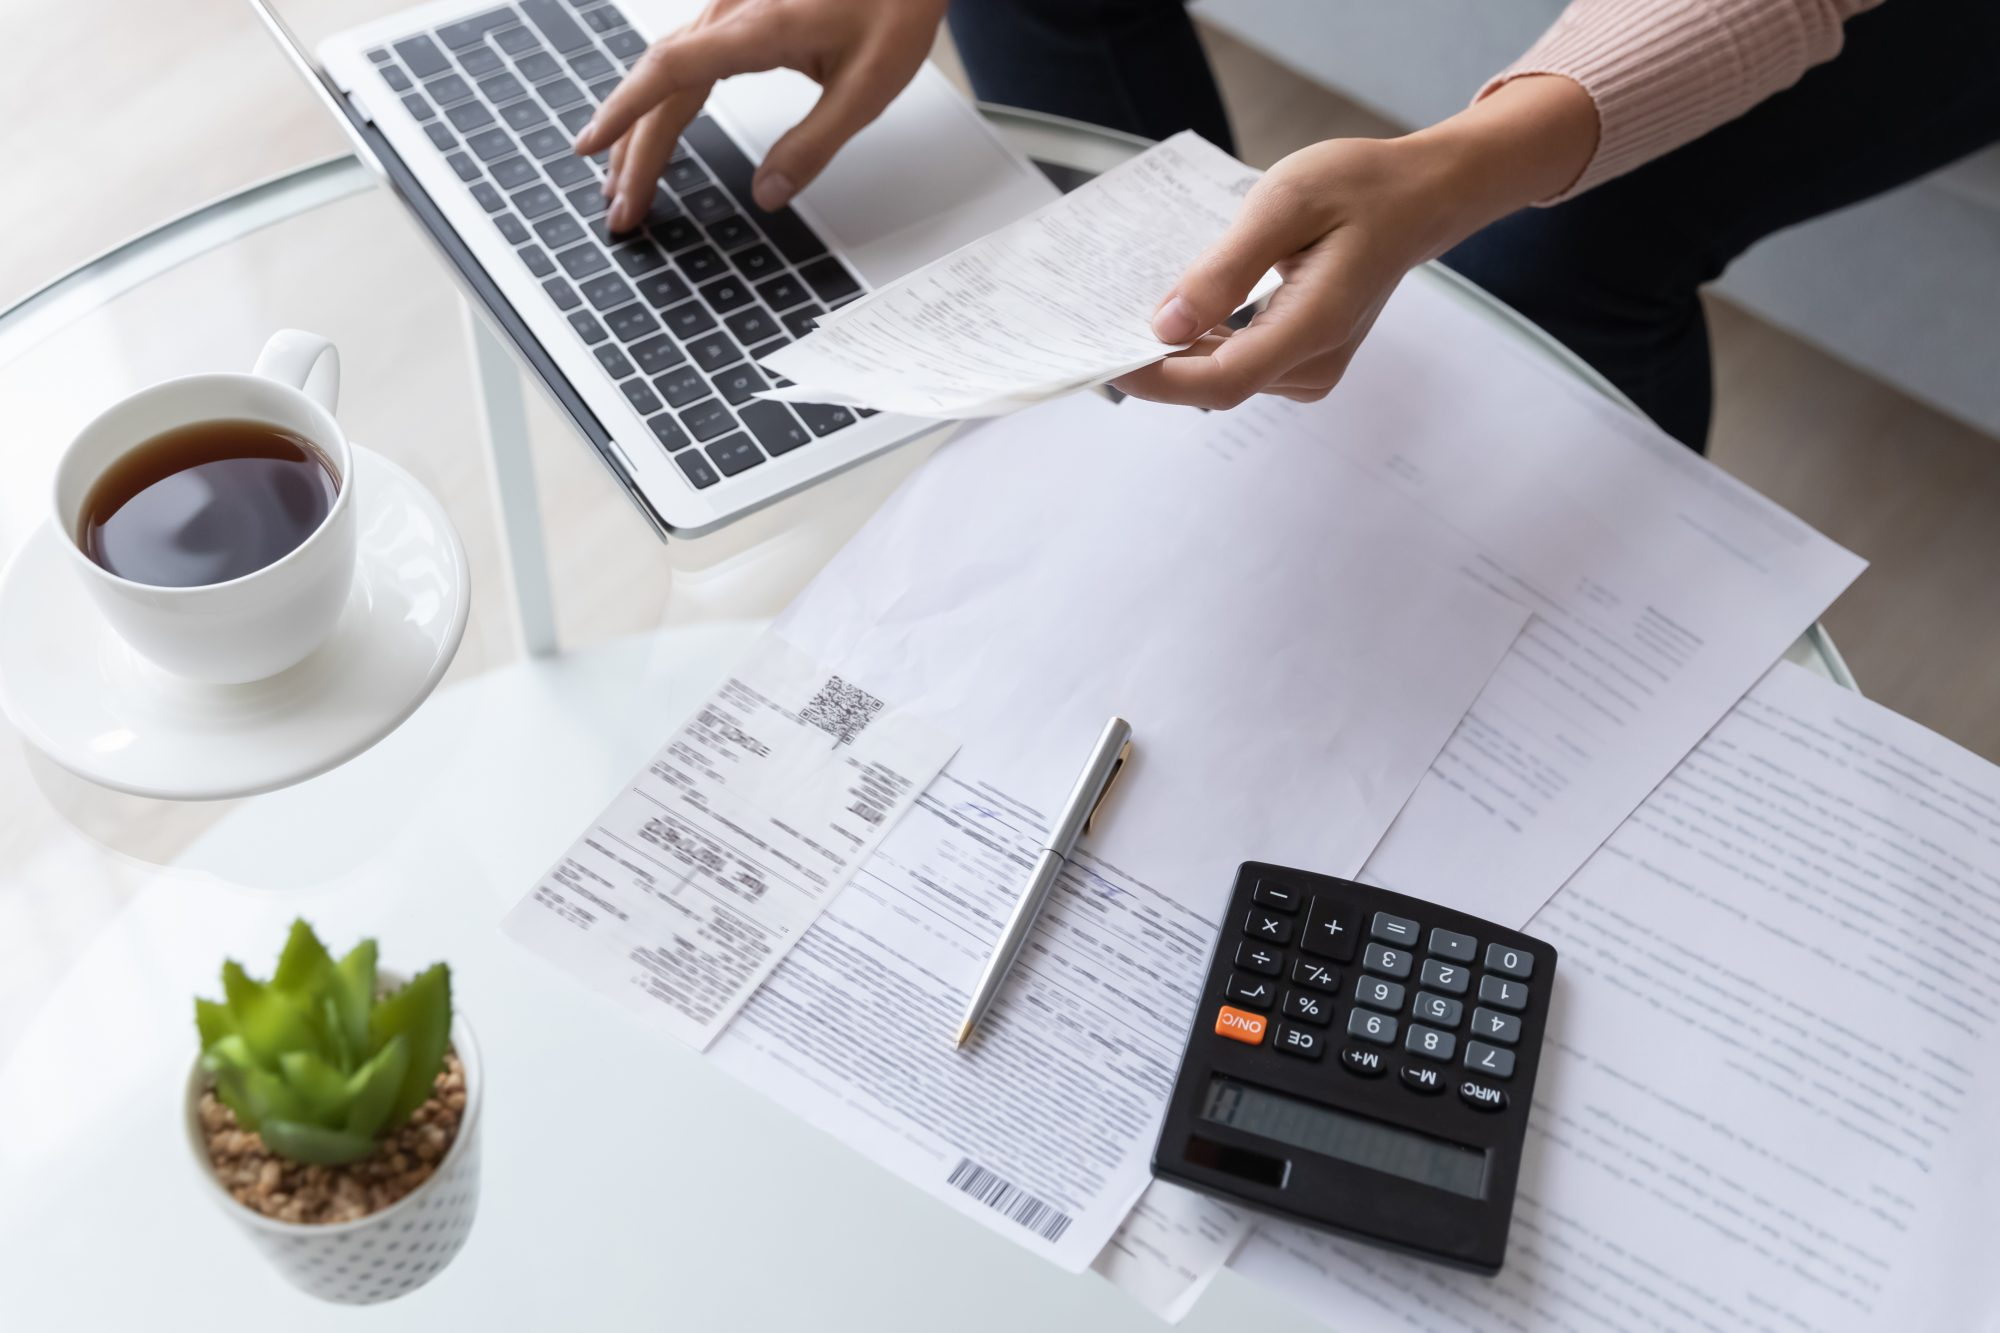 woman going over finances and paying bills online